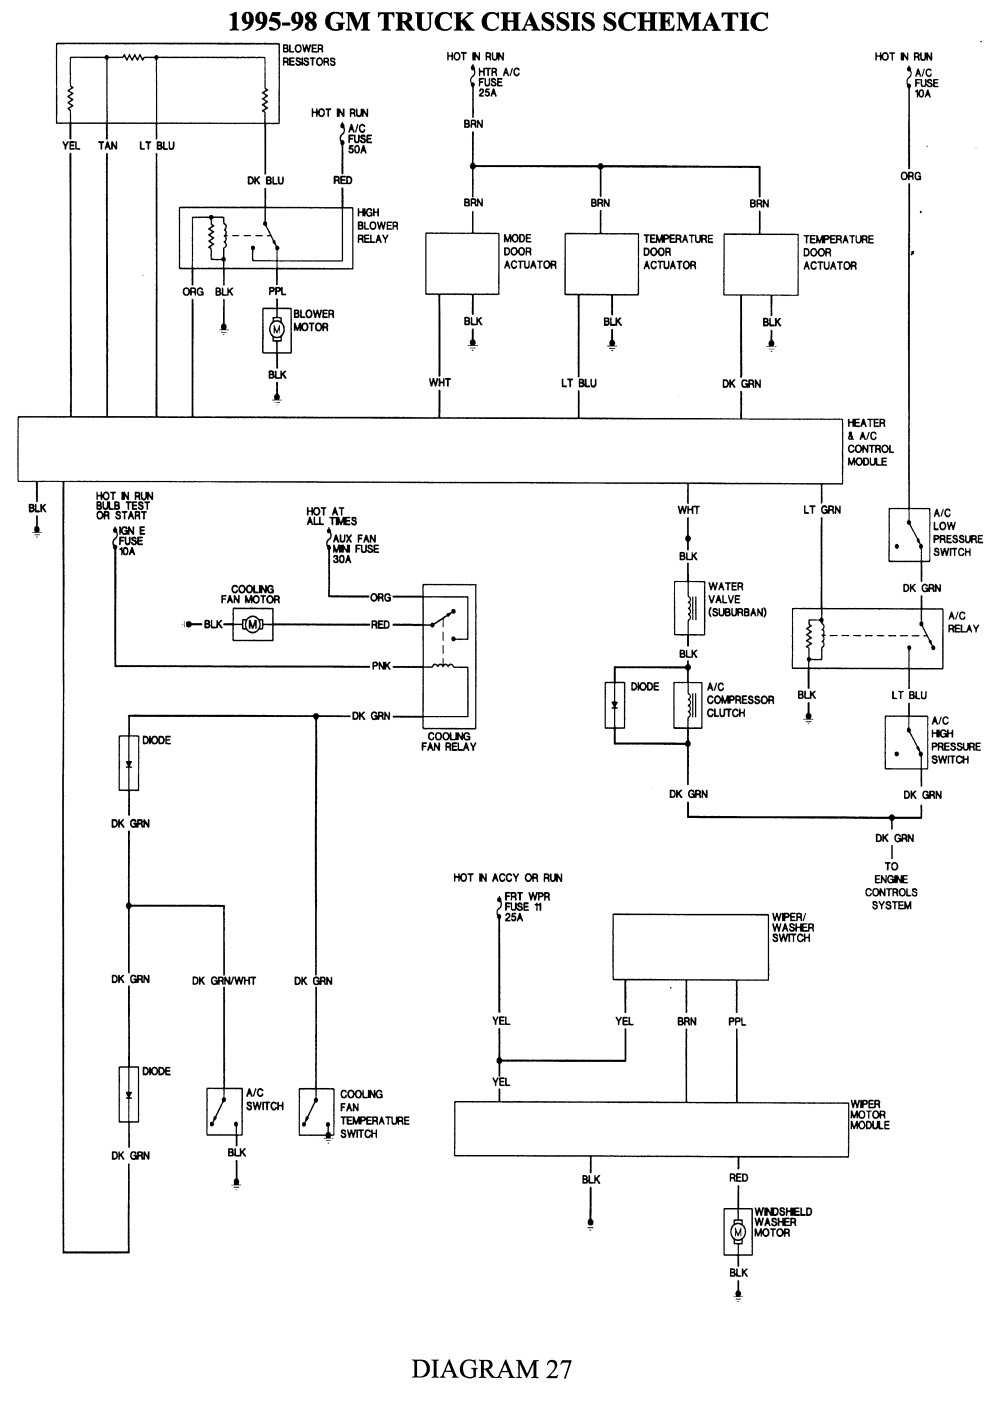 chevy tahoe trailer wiring diagram Collection-Trailer Wiring Diagrams Inspirational Wiring Schematic Heater Blower Motor for 98 Chevy Tahoe Google 9-h